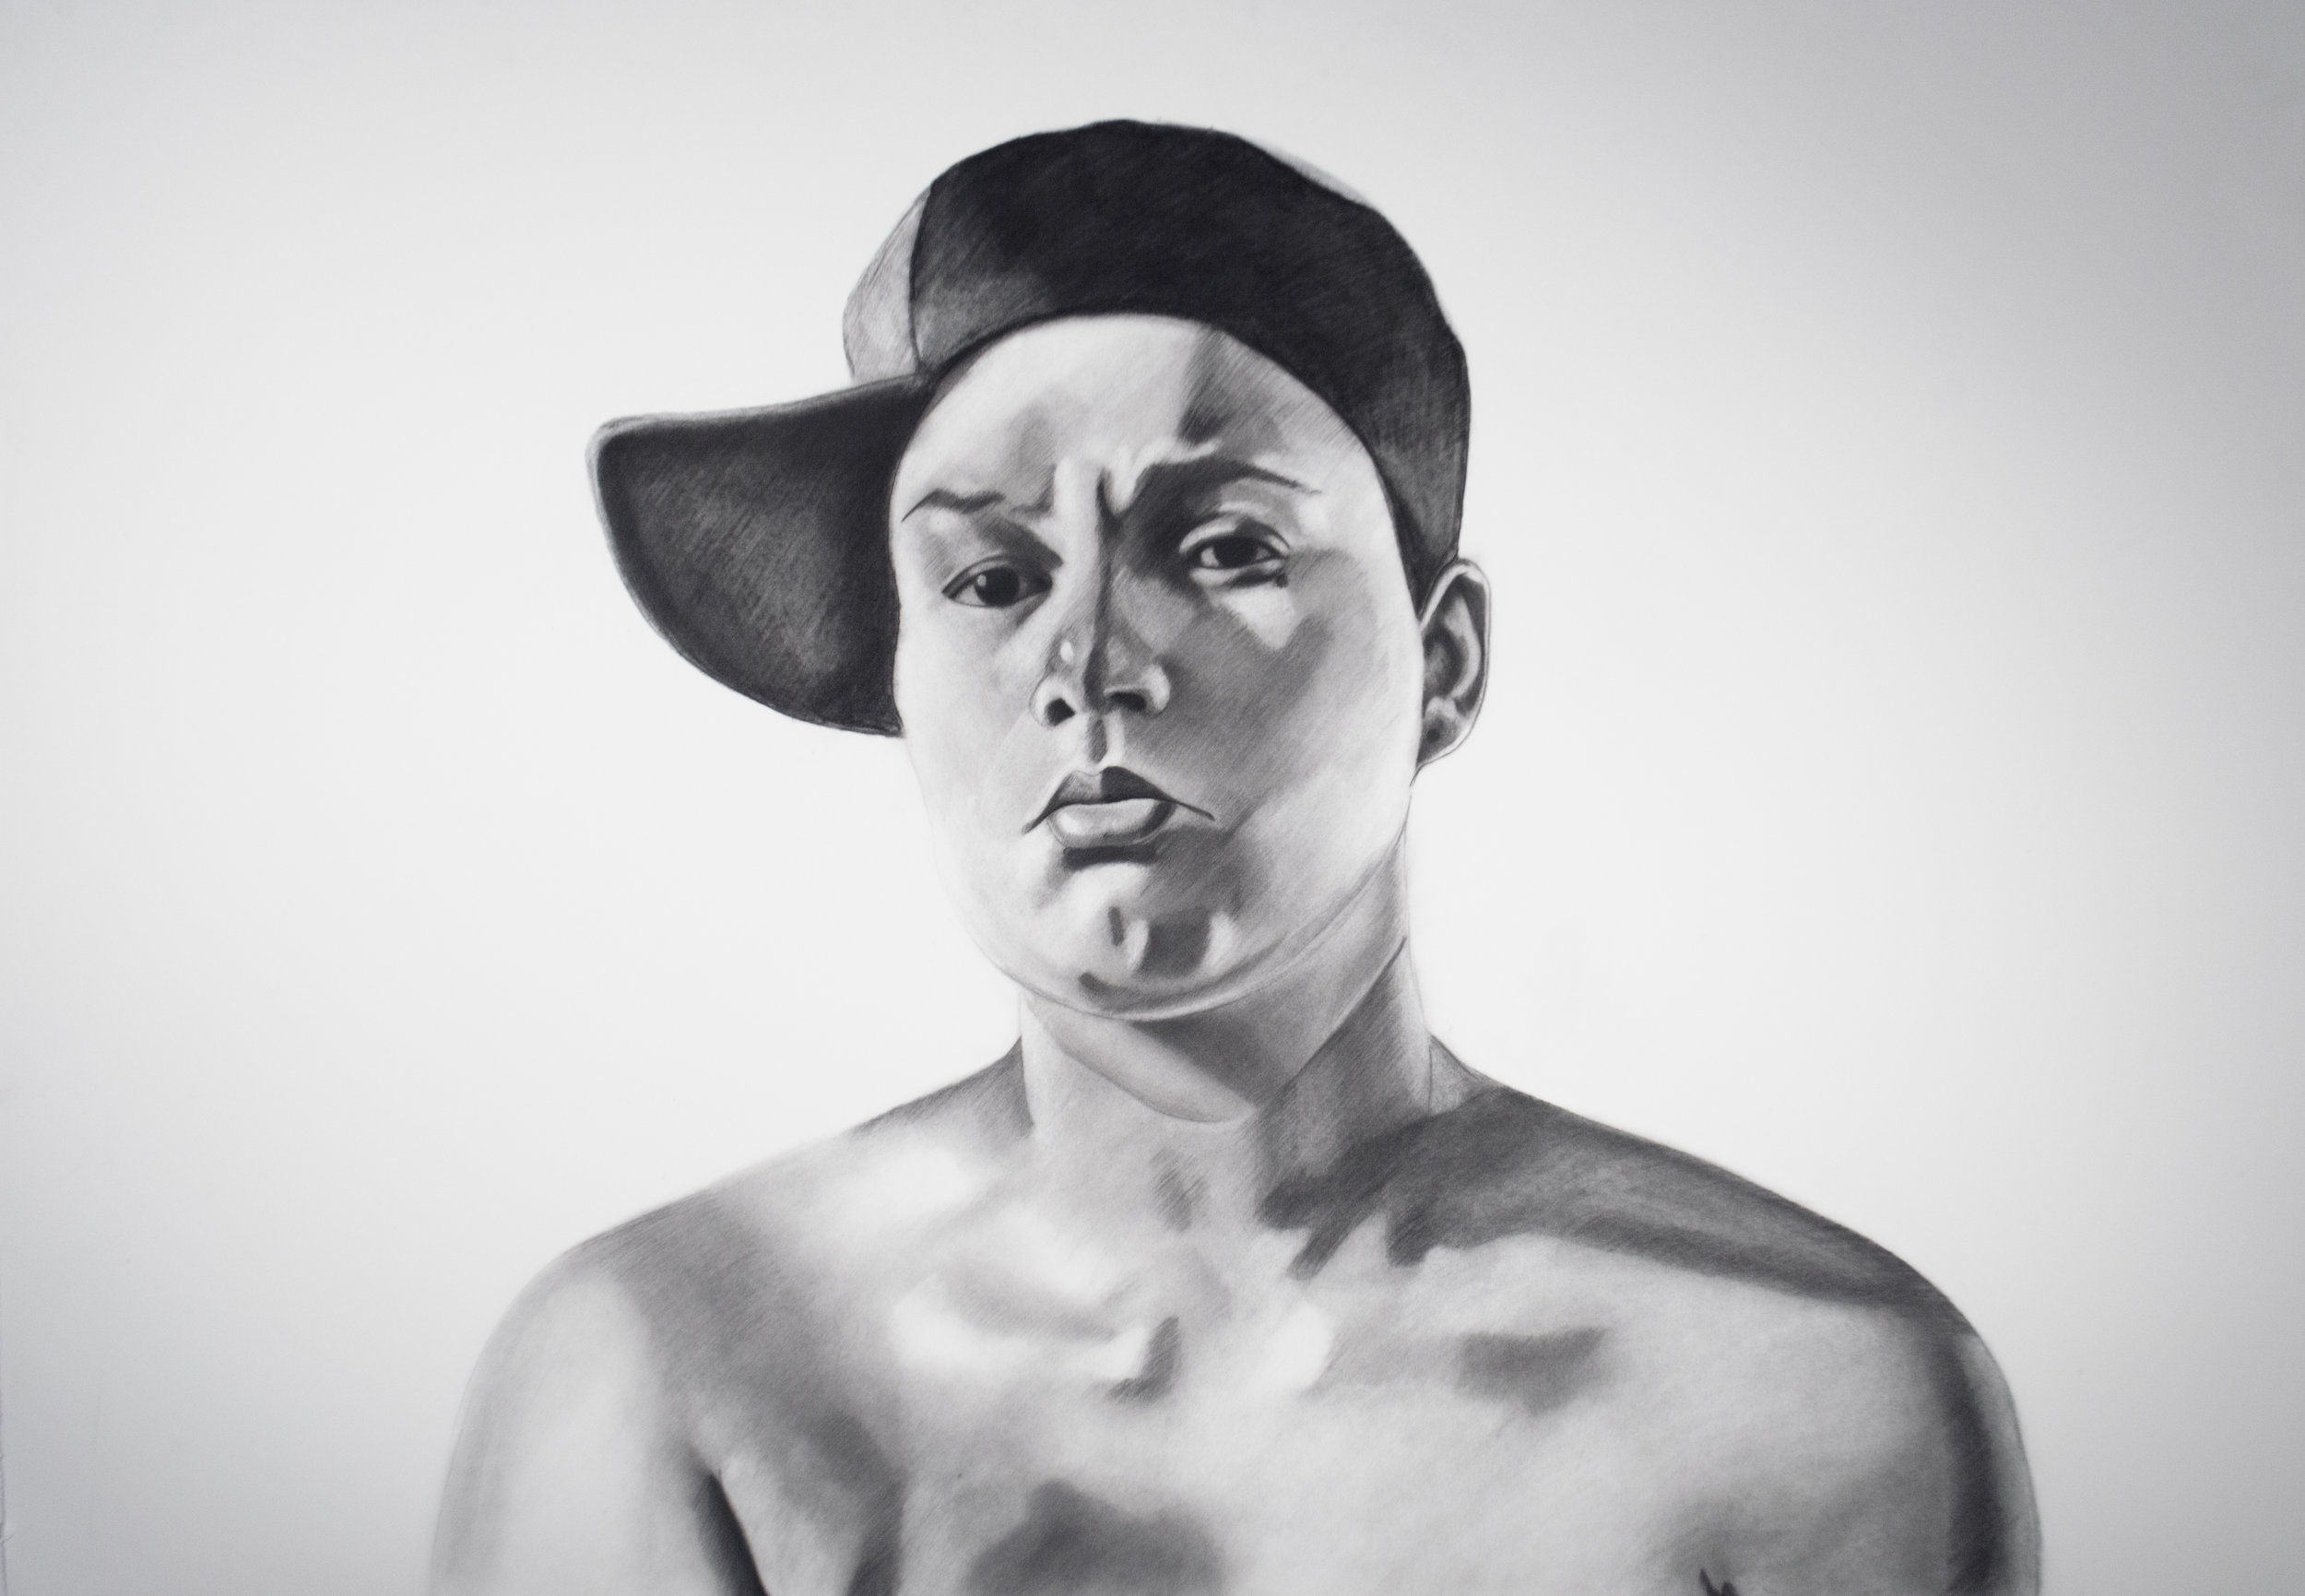 Muñeca, 37 x 50.5 Inches, Charcoal on paper.